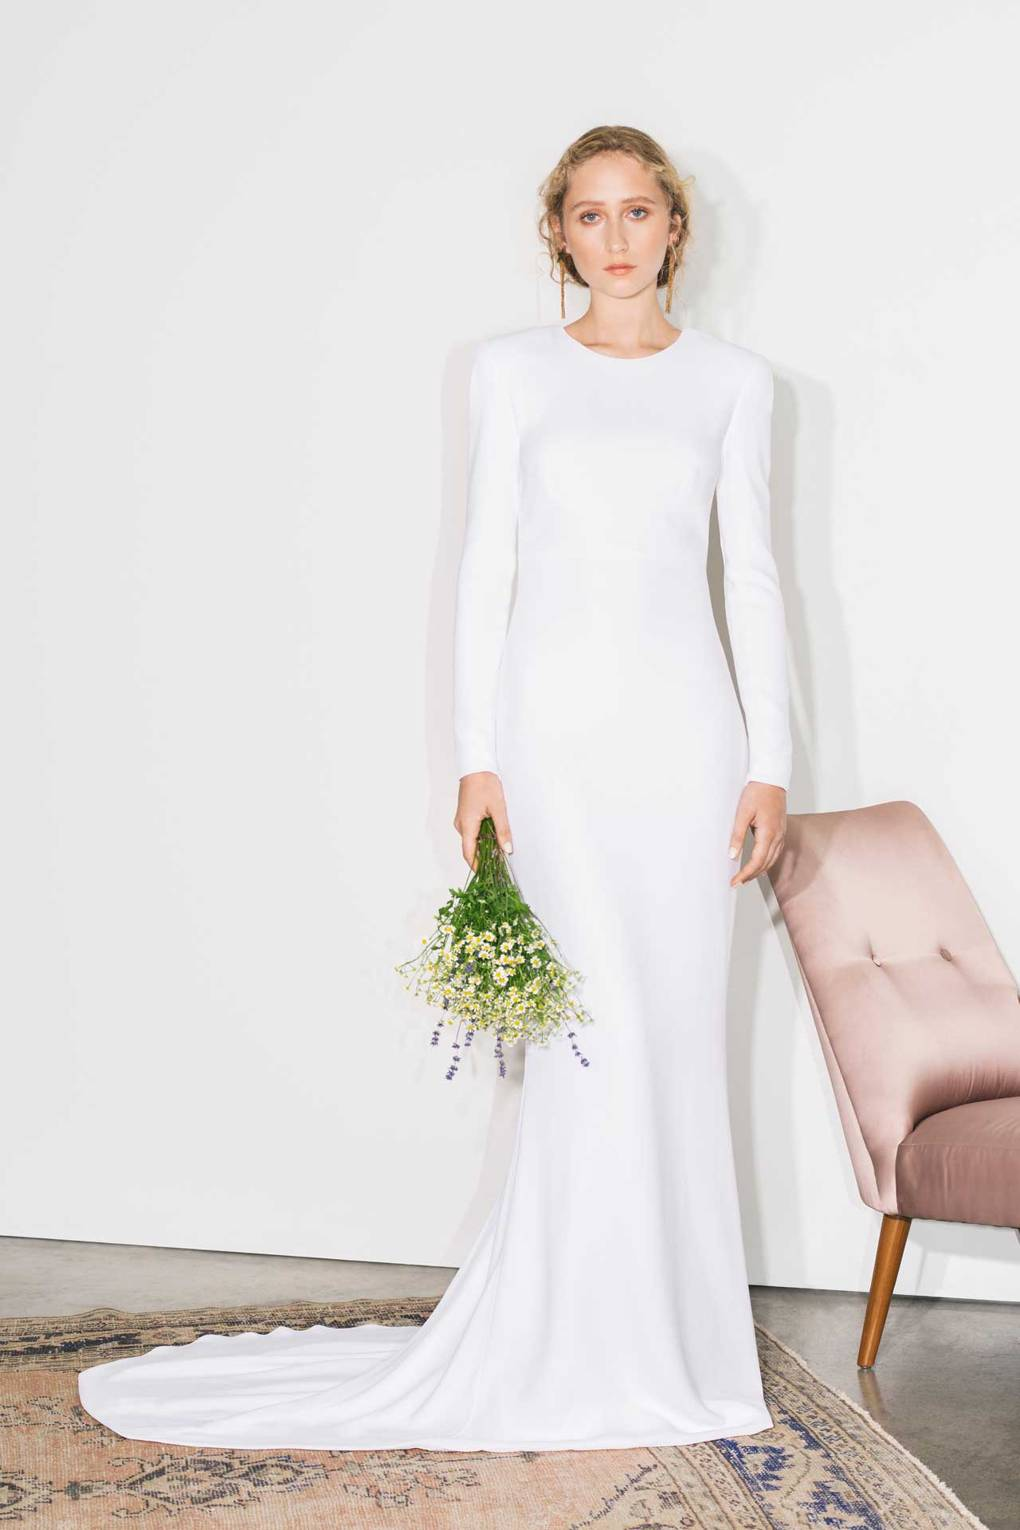 Stella McCartney is launching a bridal line and yes, it includes Meghan's dress forecast